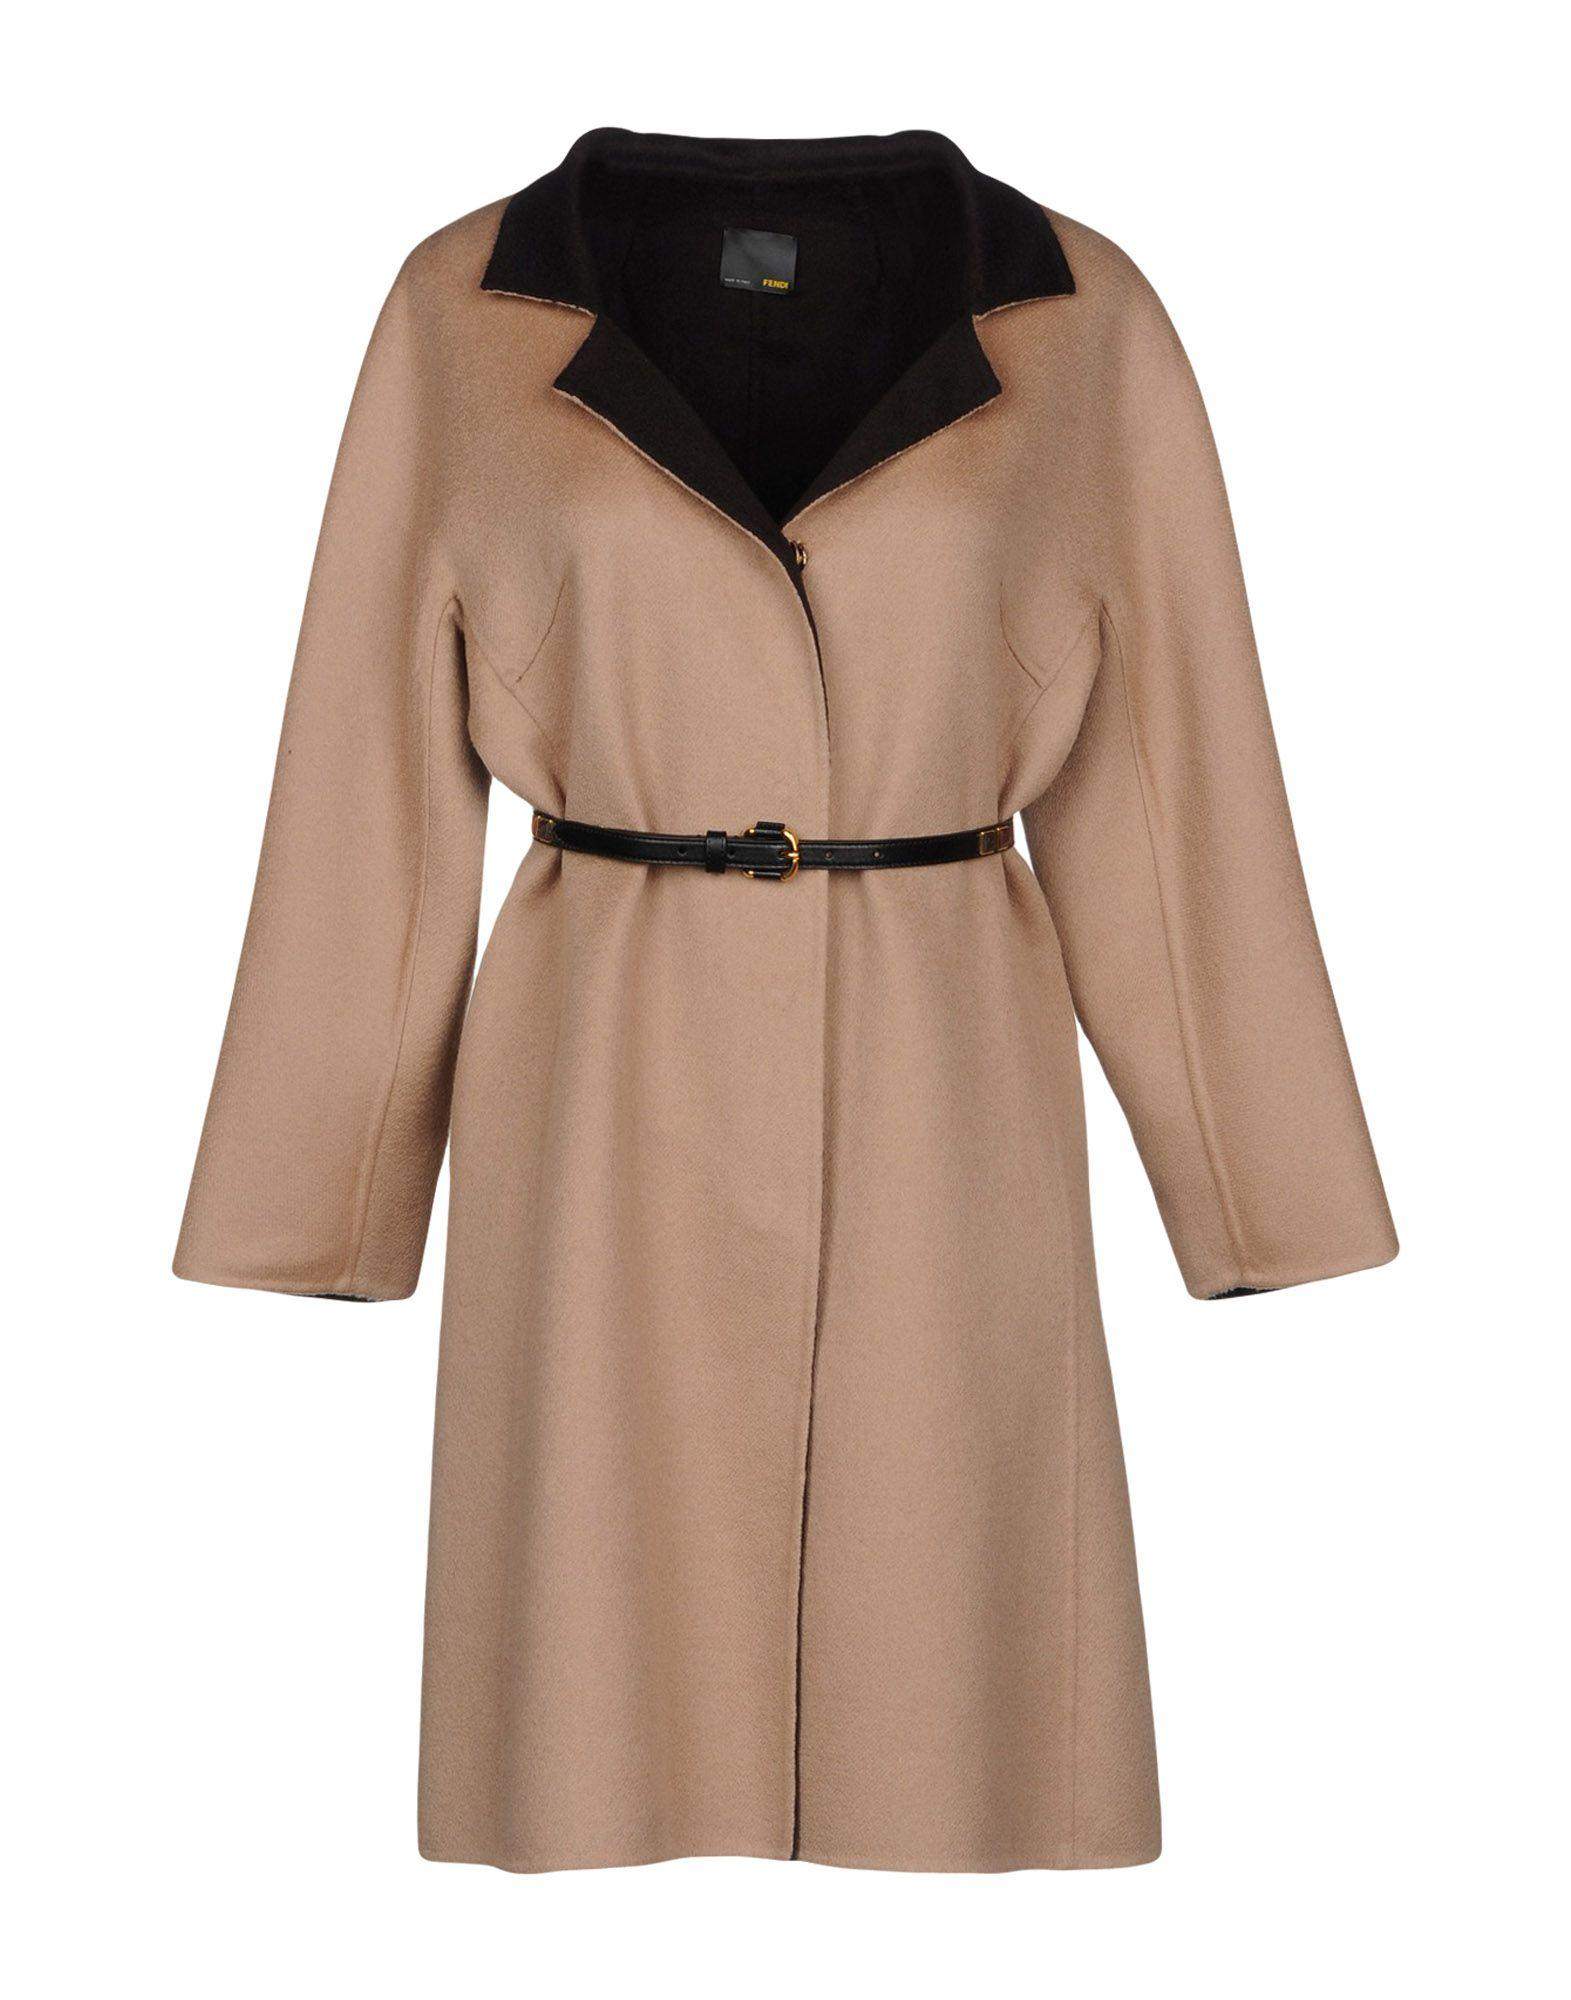 Fendi Coat In Camel